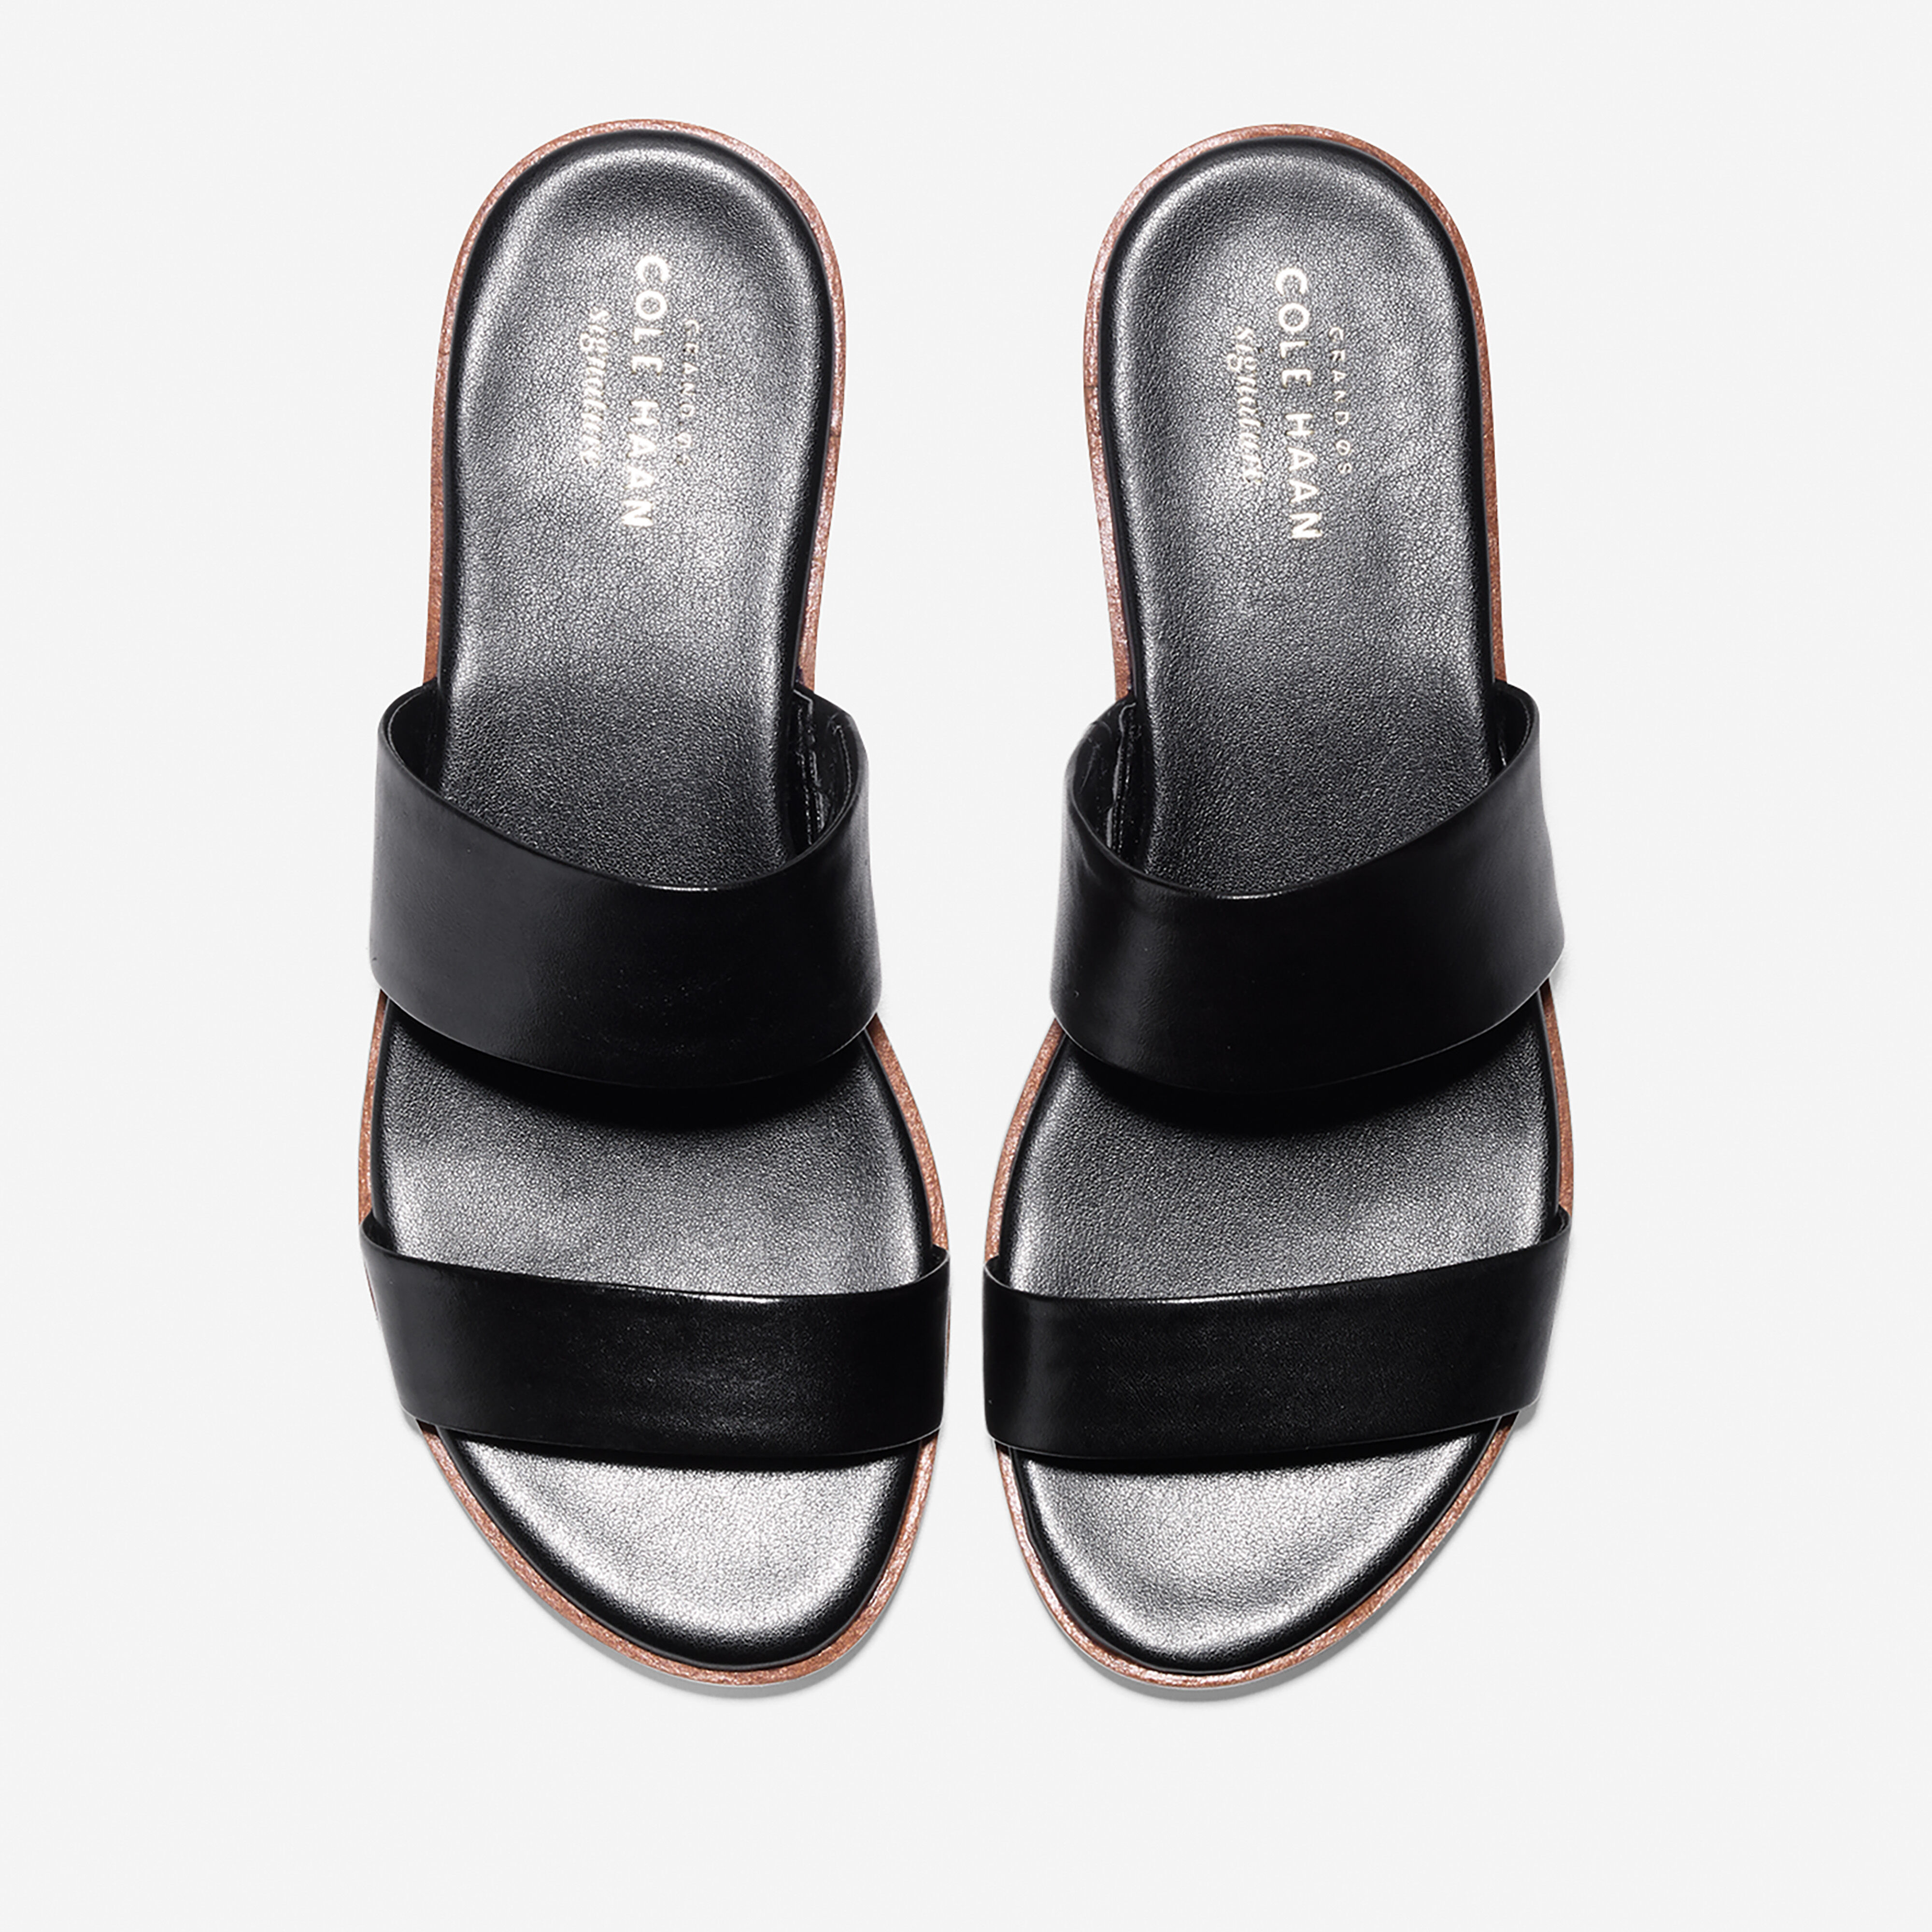 Findra Sandal in Black Leather | Cole Haan